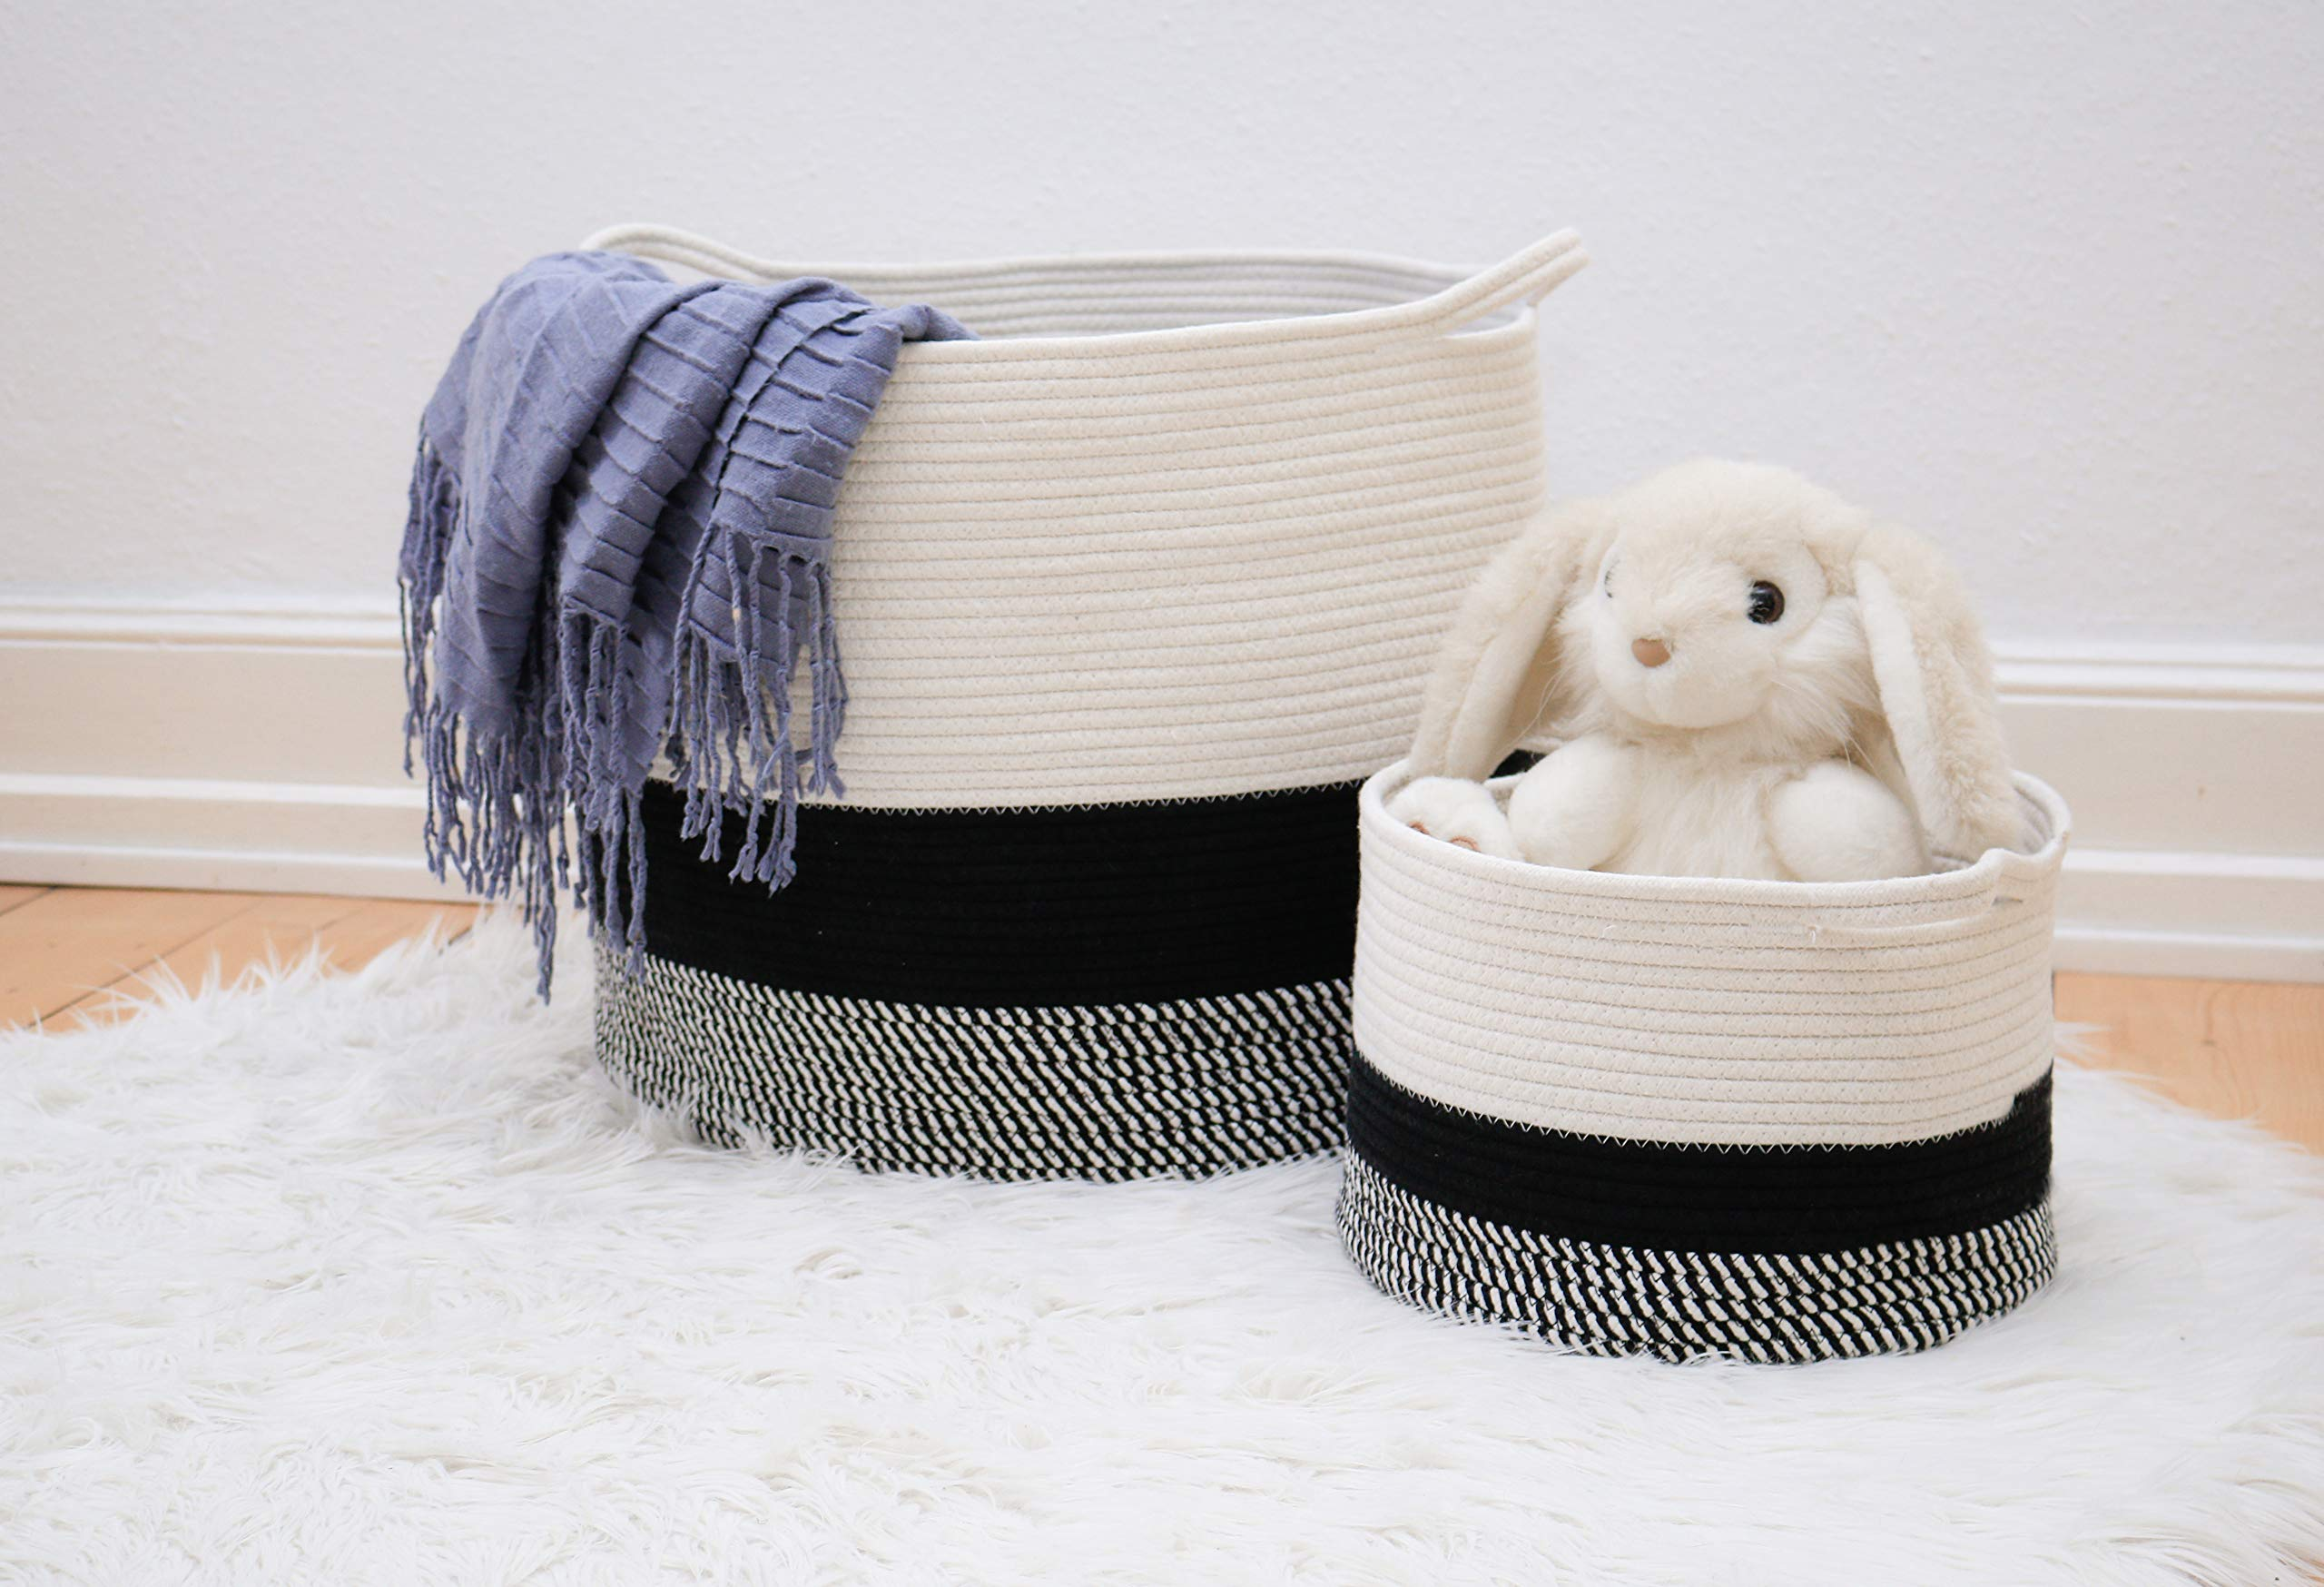 HomeSMTH Cotton Rope Storage Basket, 2 Piece Set, Large Size 20''X16'', Small Size 12''x8'', for Baby Laundry Hamper, Woven Nursery Baskets, Decorative Room Baskets